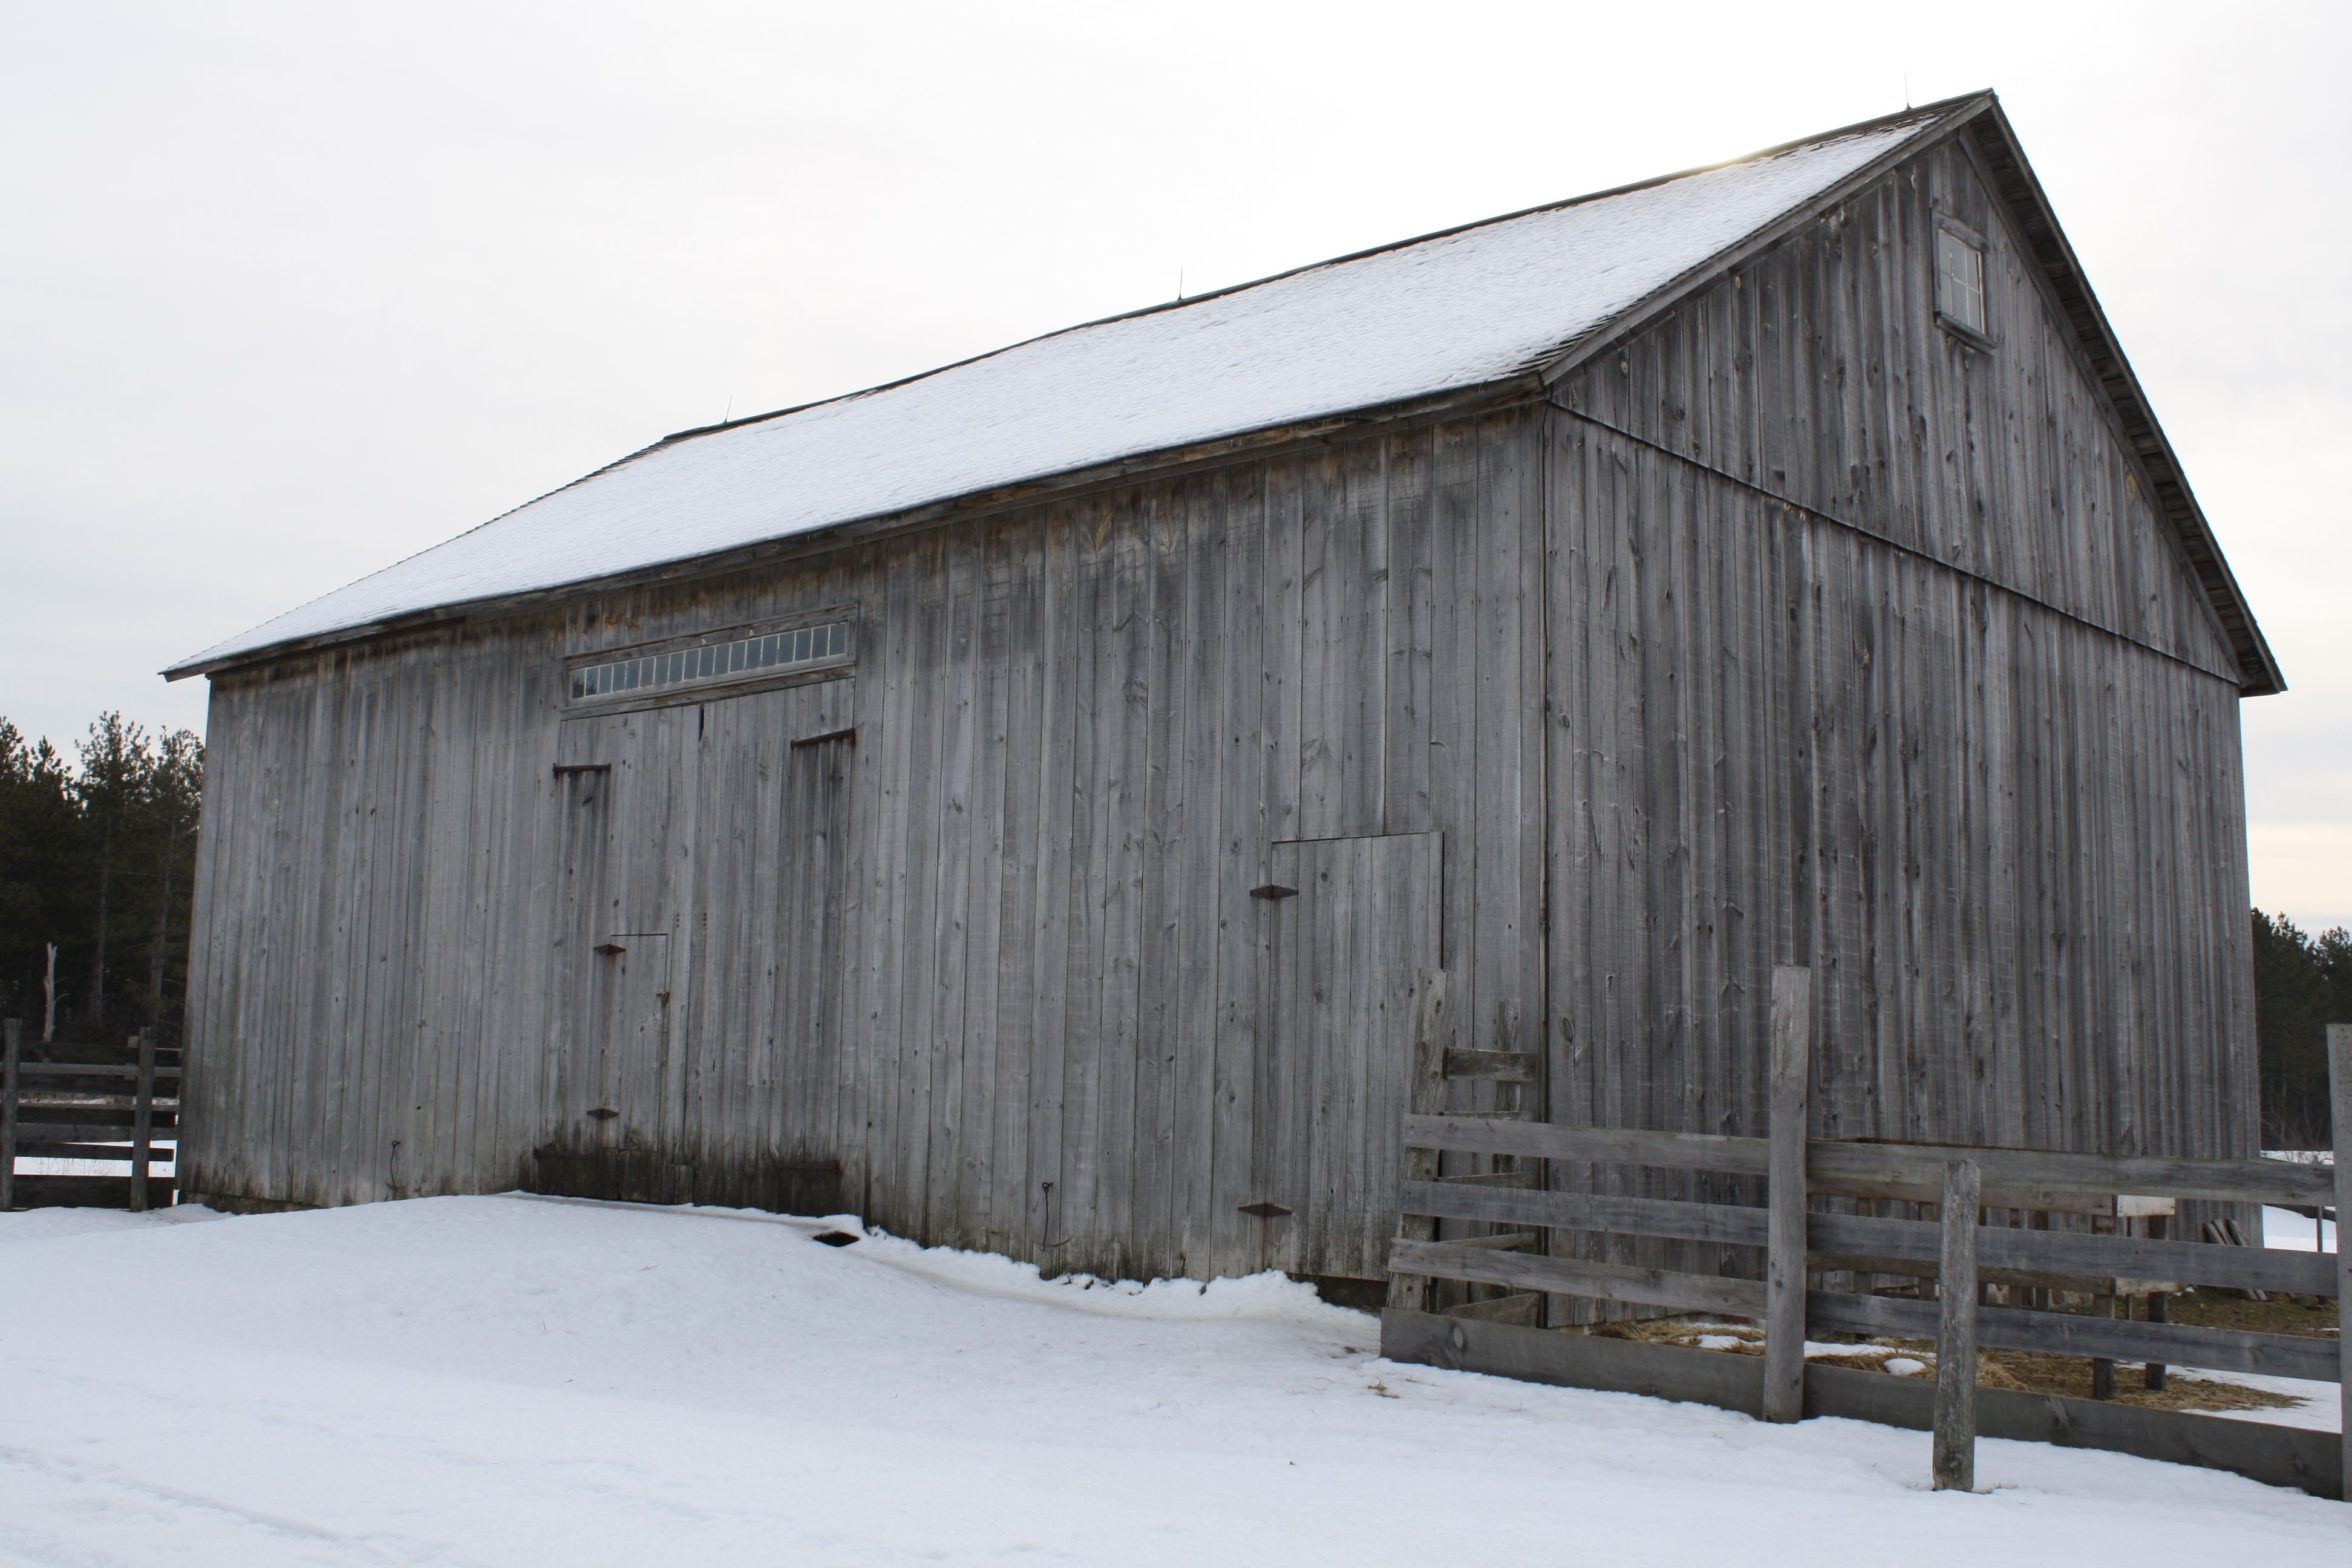 The loomer barn at the s crossroads village old world wisconsin